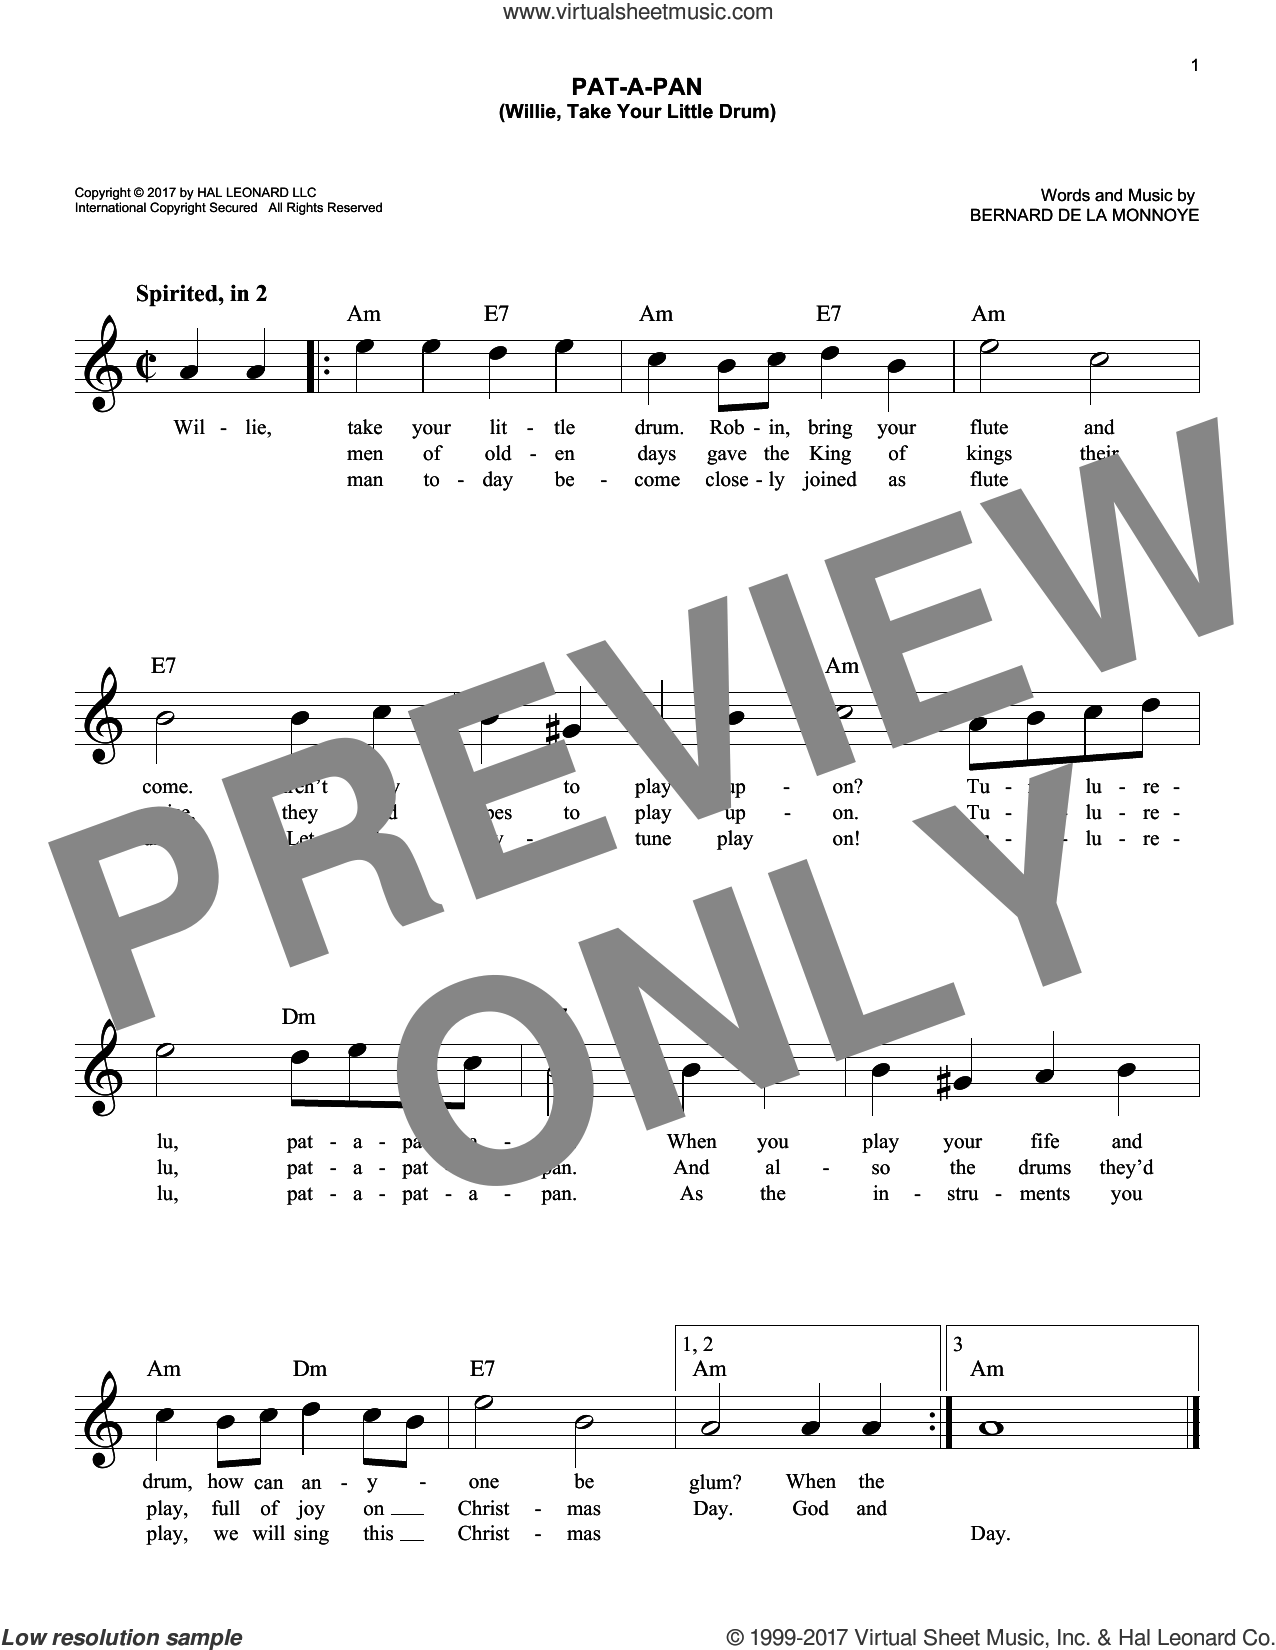 Pat-A-Pan (Willie, Take Your Little Drum) sheet music for voice and other instruments (fake book) by Bernard de la Monnoye, intermediate. Score Image Preview.